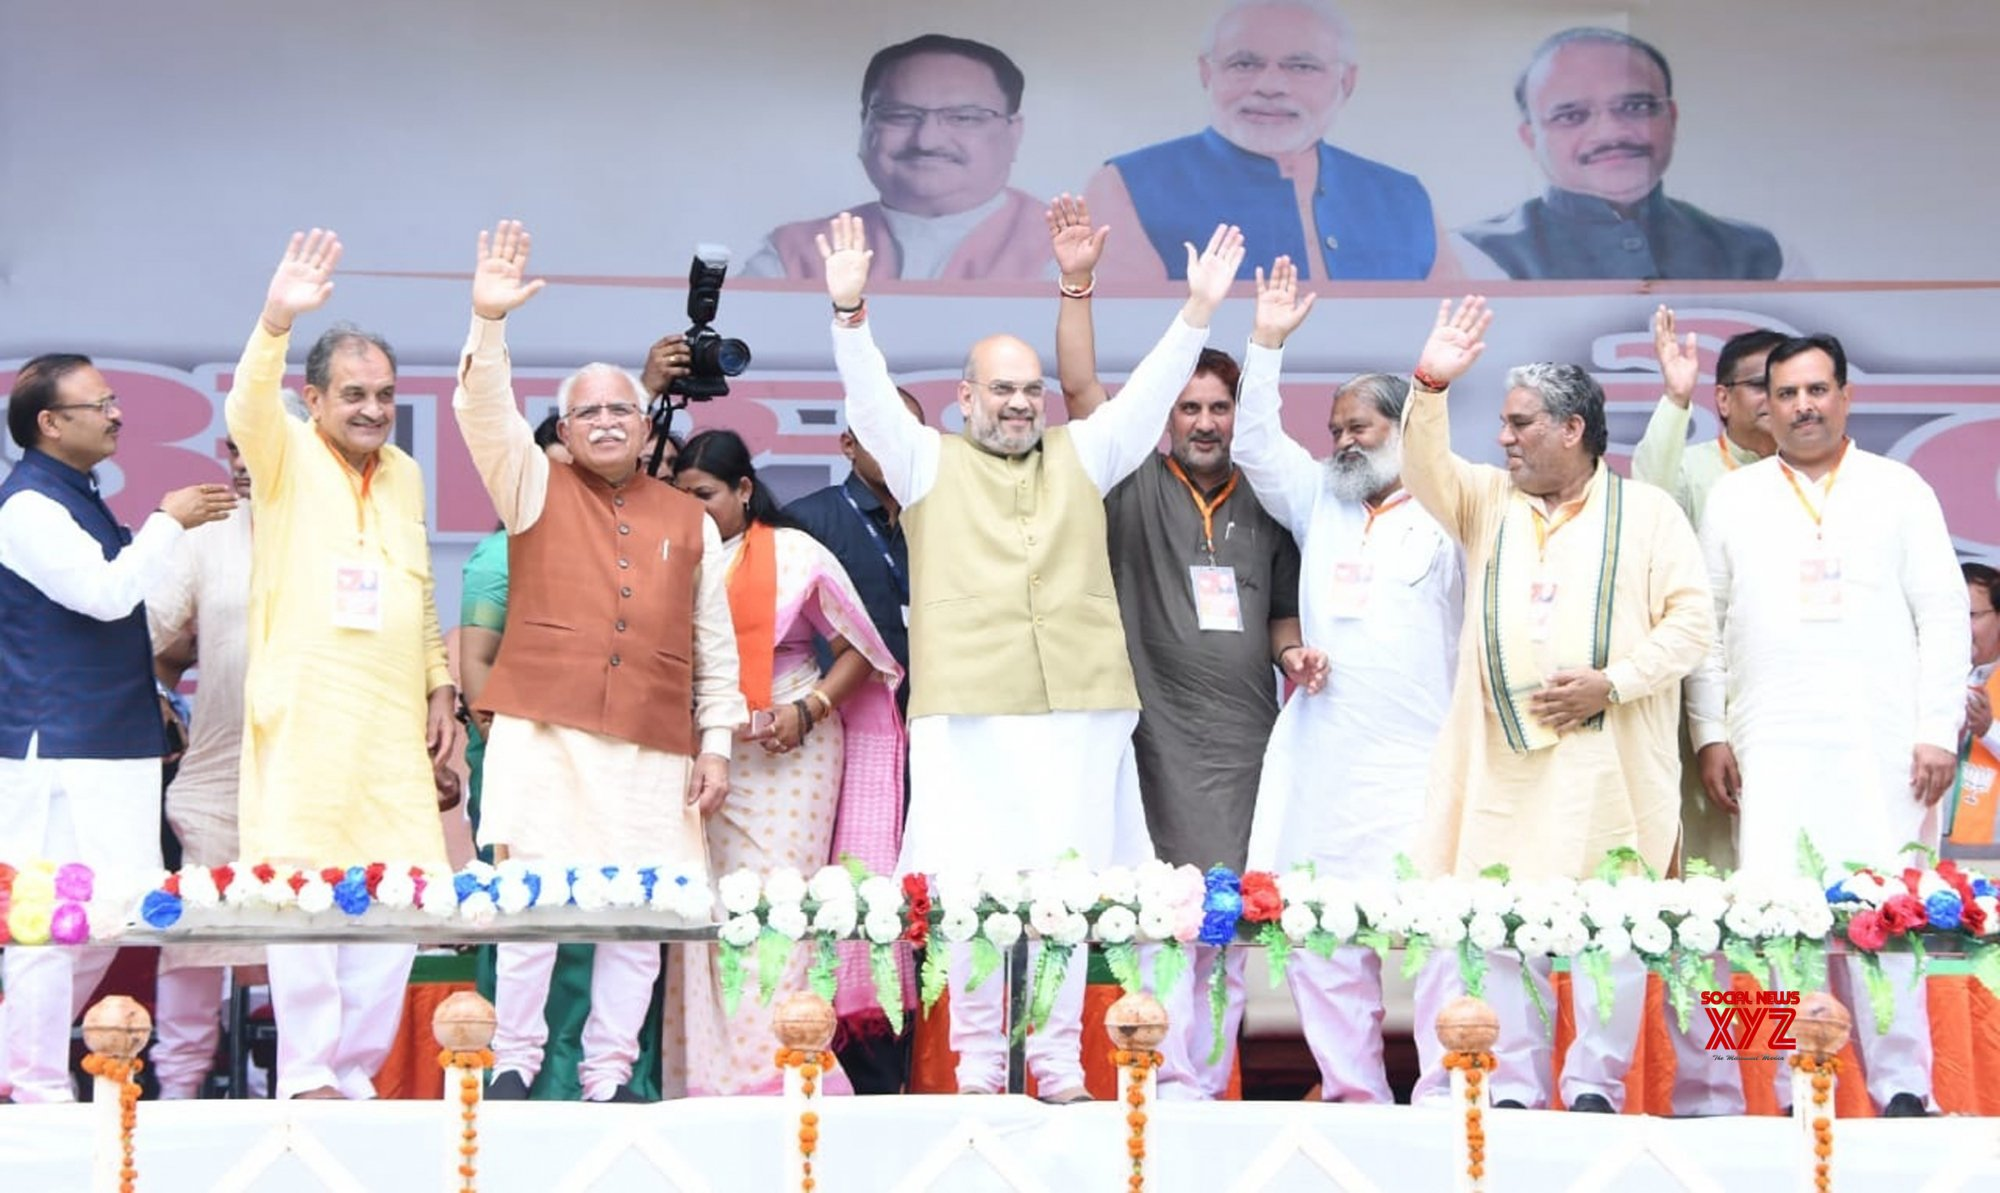 Jind: Amit Shah at Astha Rally in Haryana #Gallery